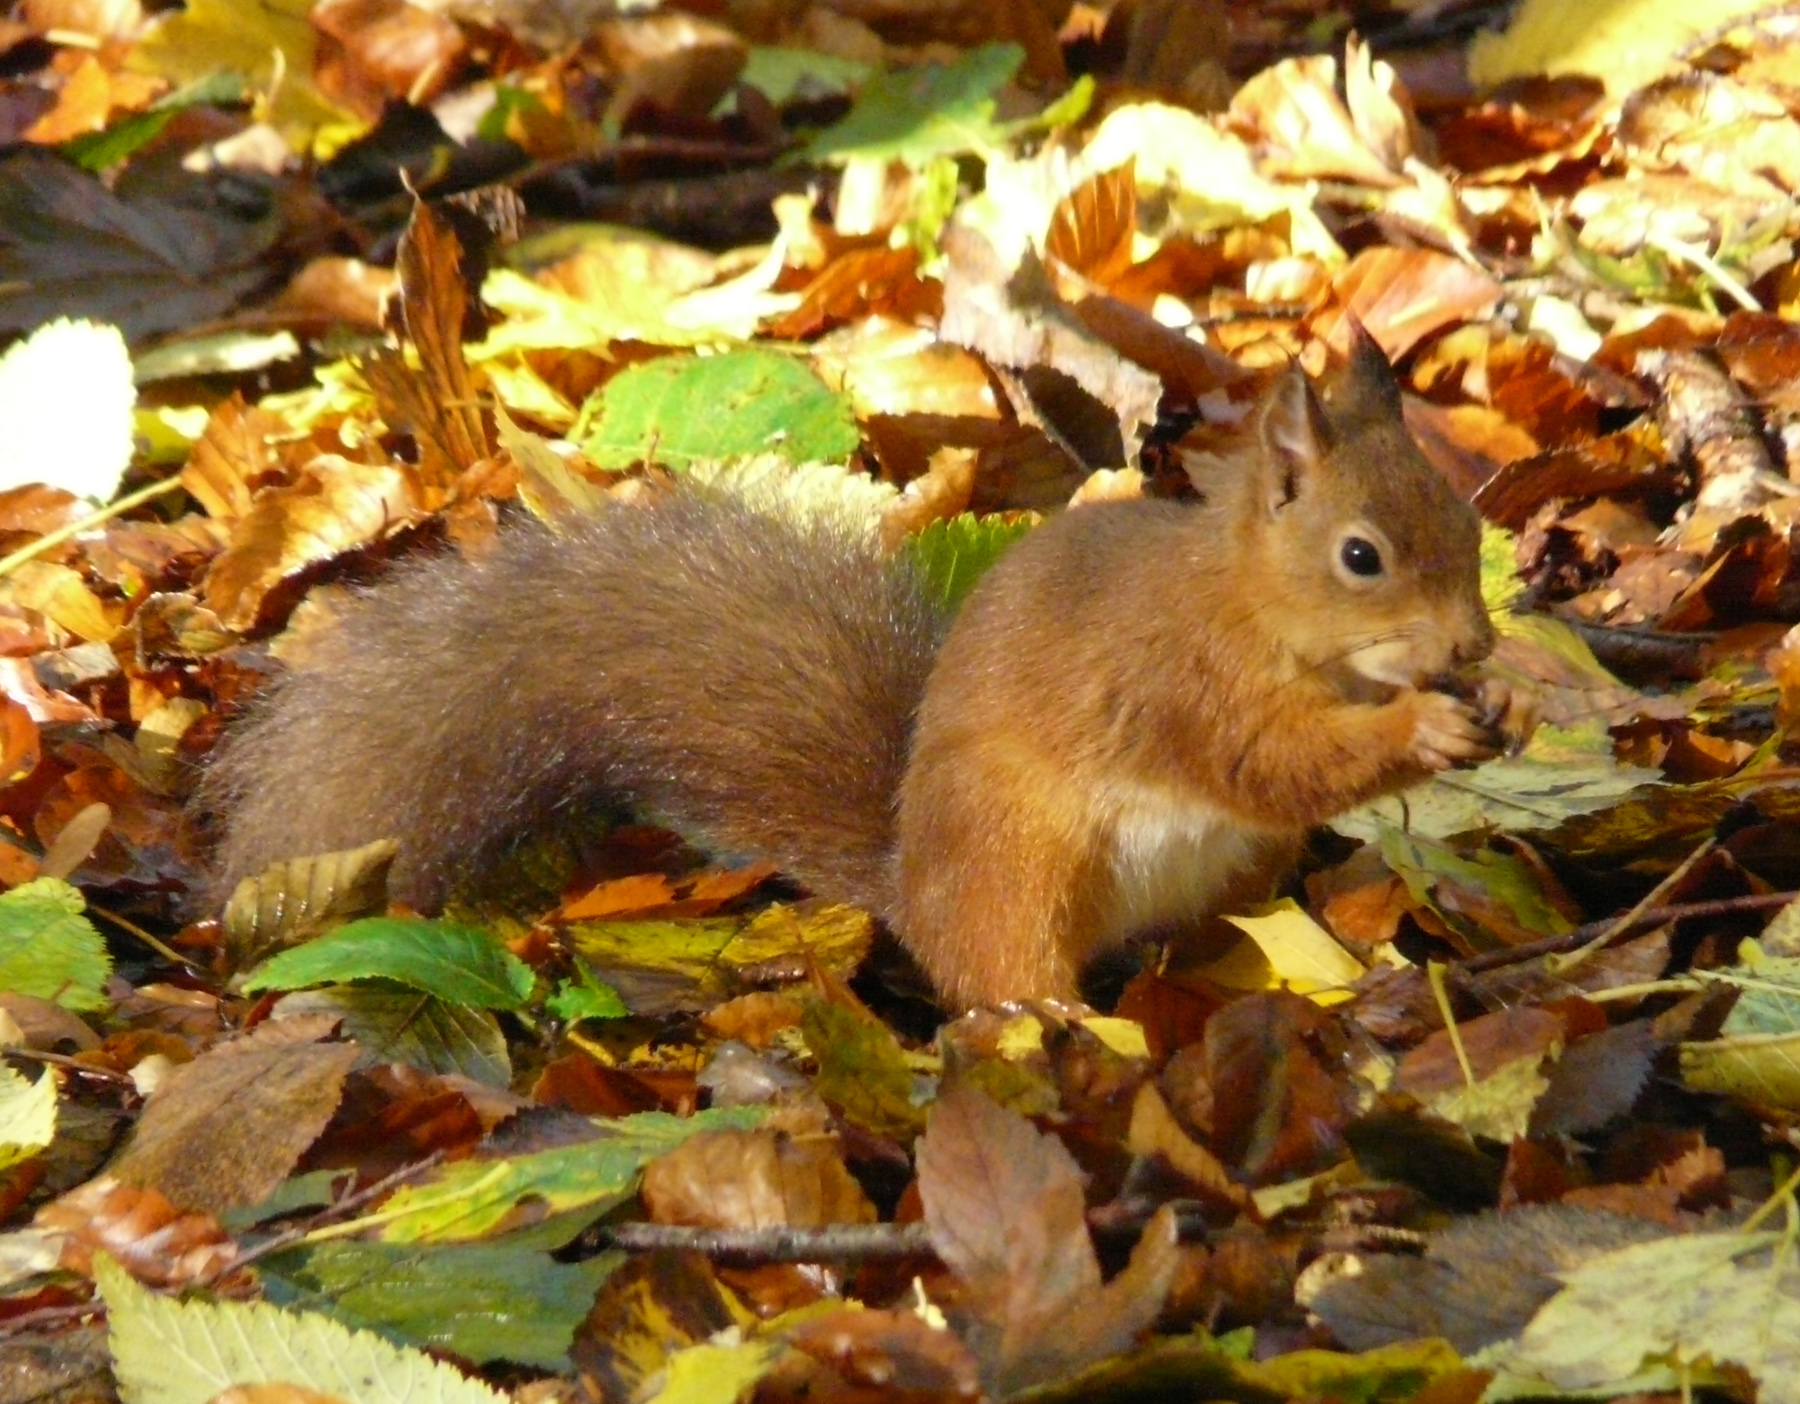 Red squirrels have been spotted every day this week at Haddo House